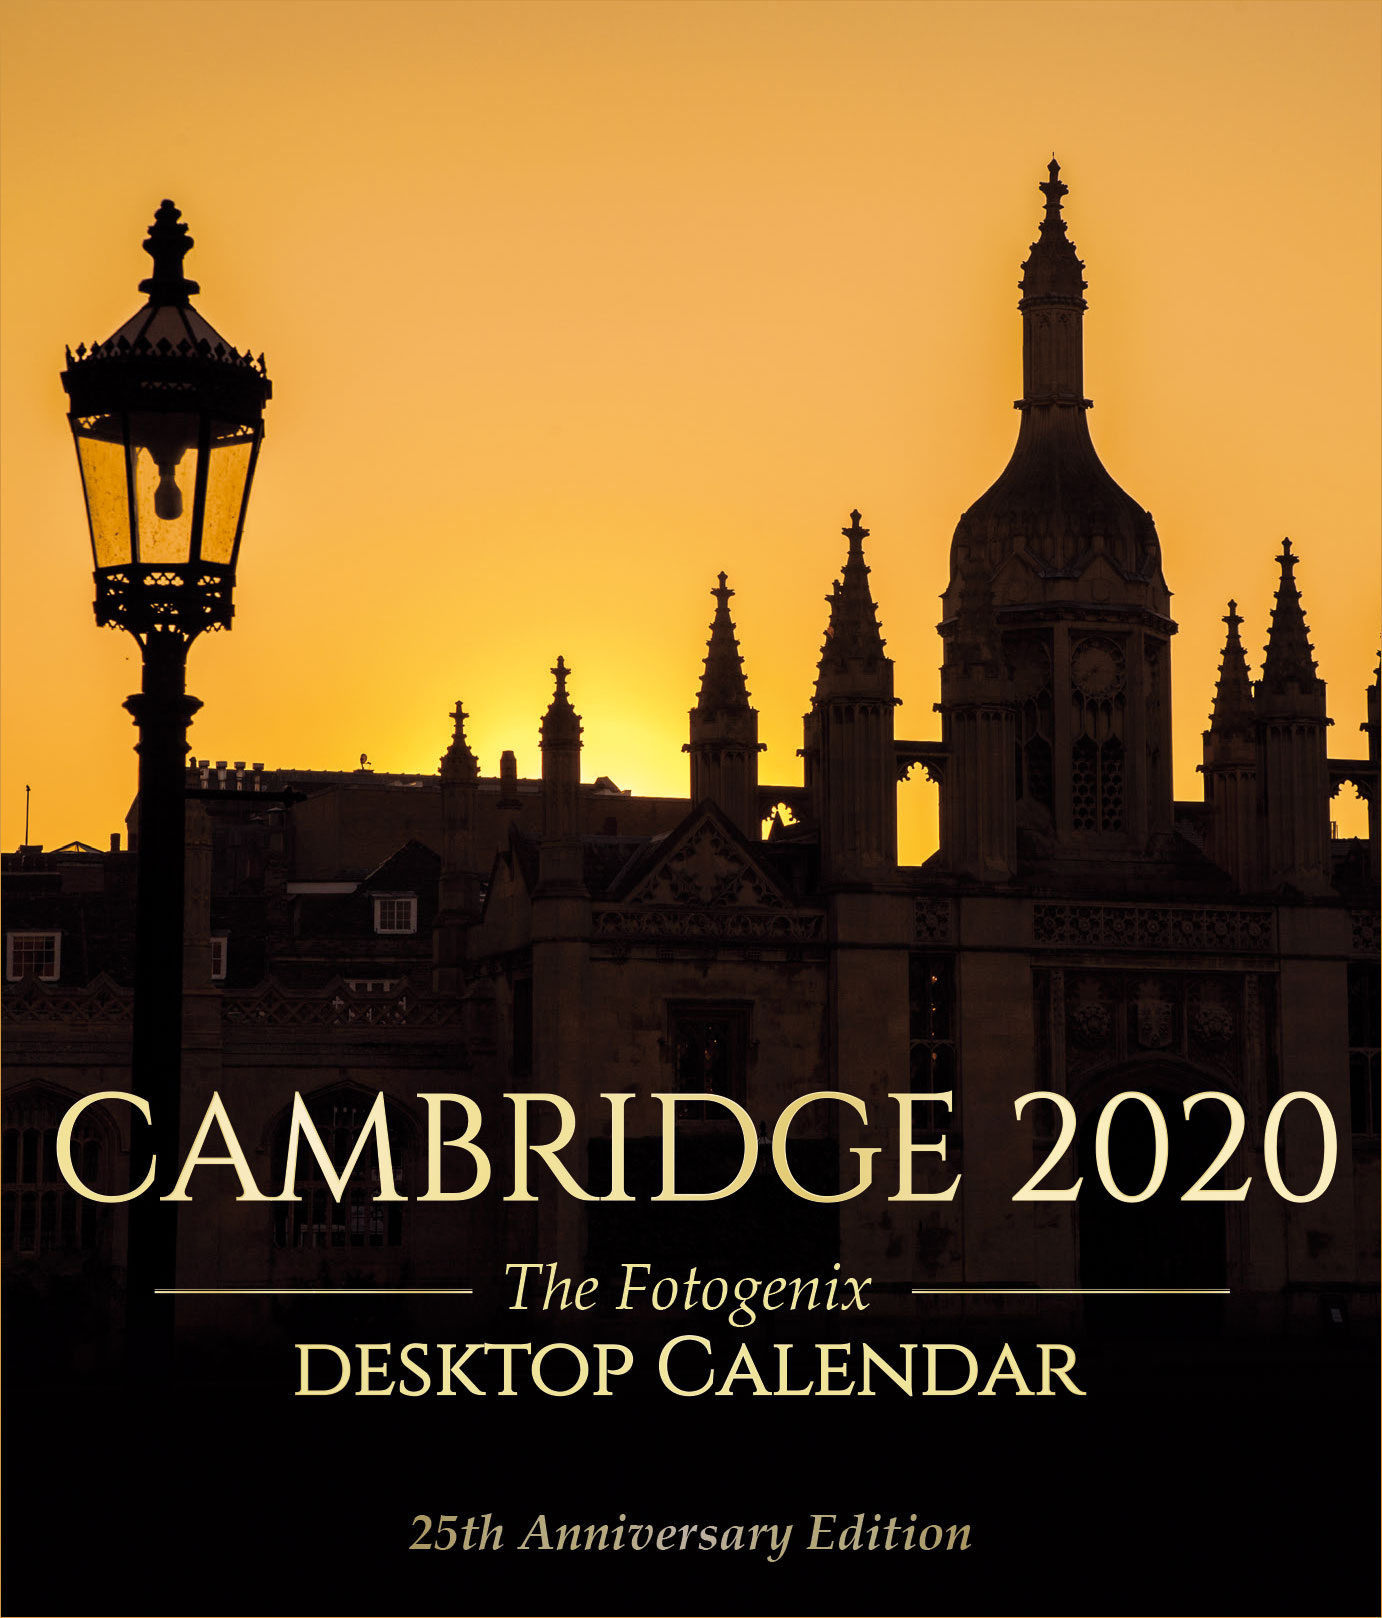 Please click here to view the Desktop Calendar for 2020